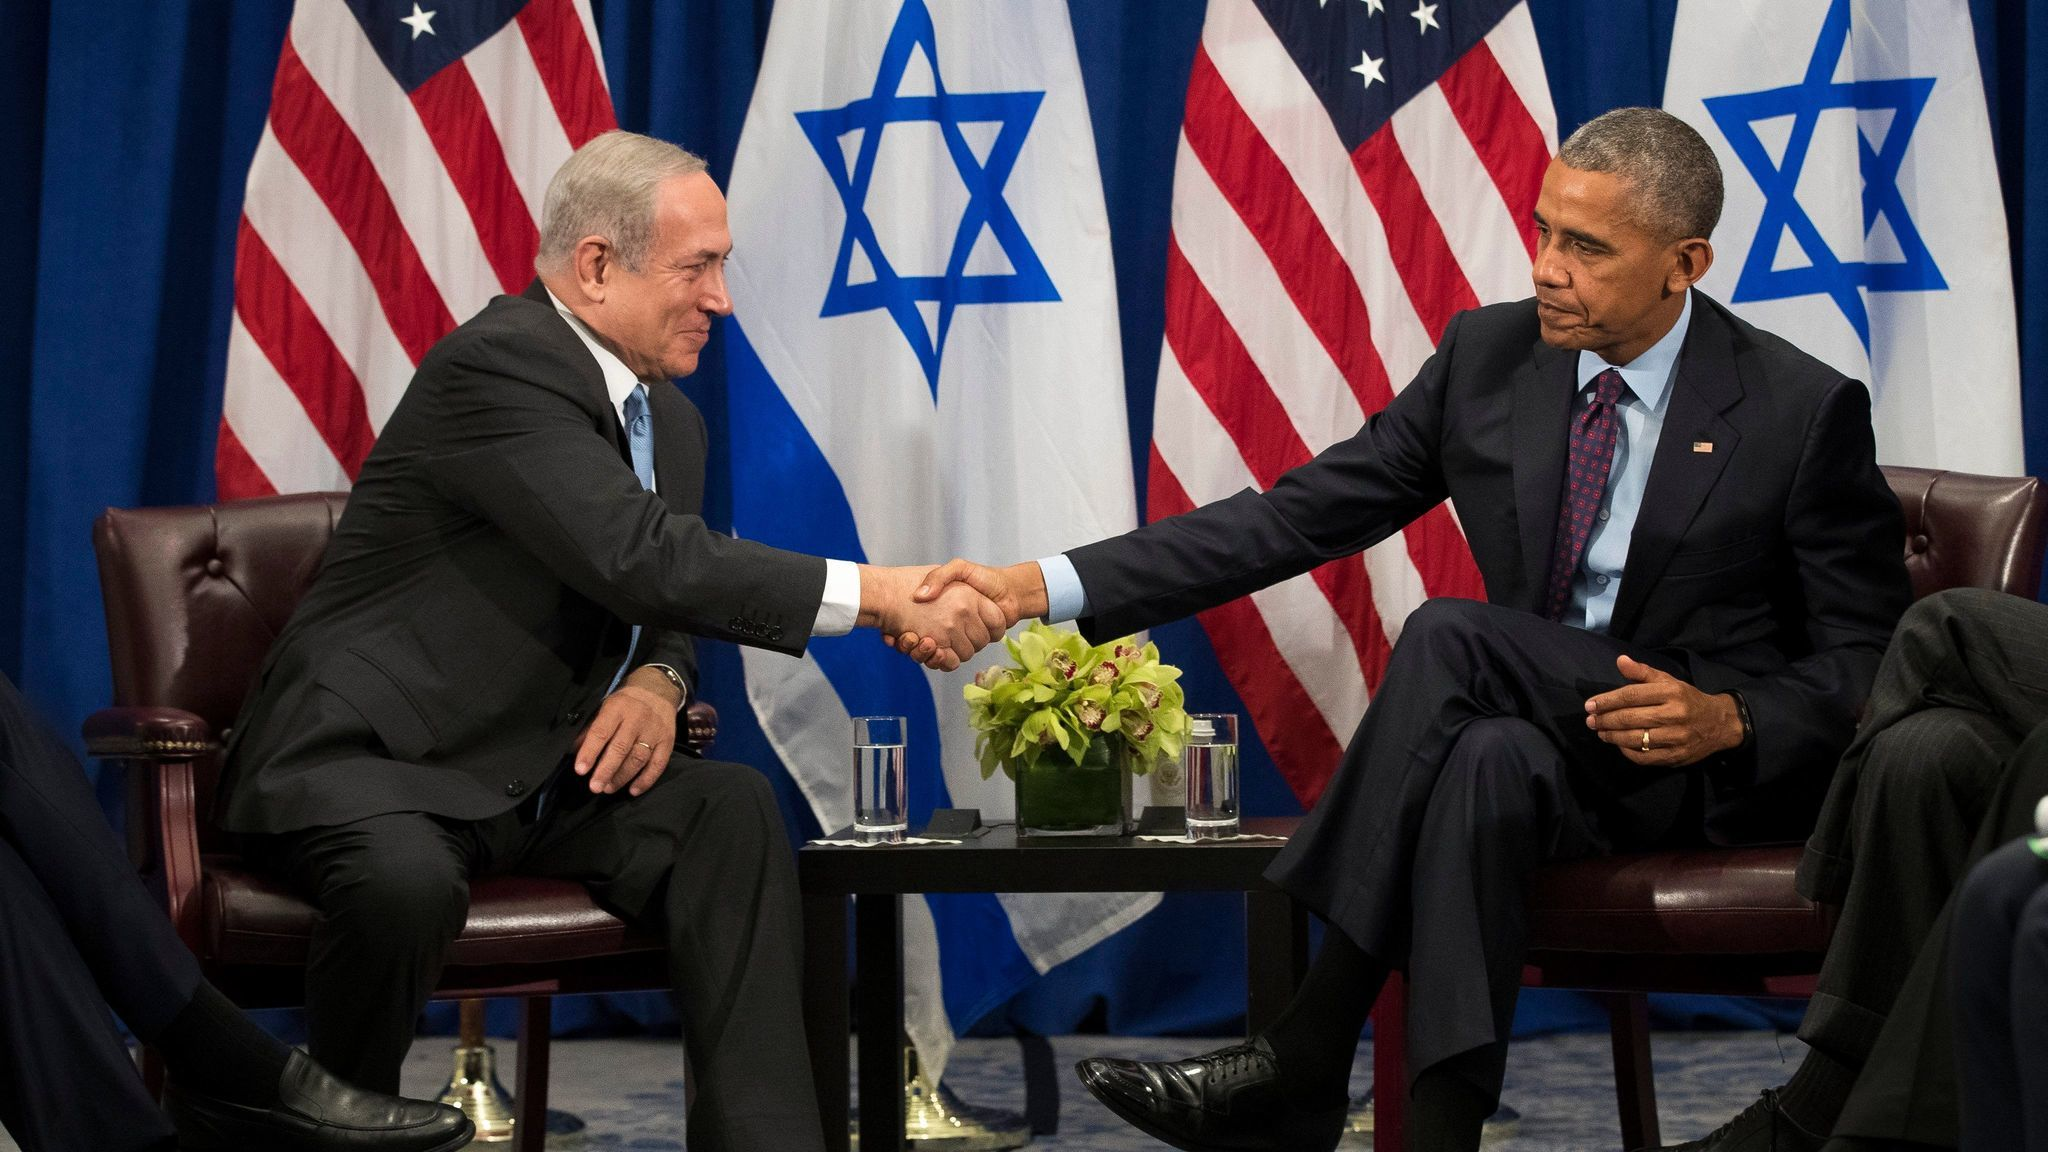 The United States agreed to a $38 billion, 10-year aid package for Israel in September.